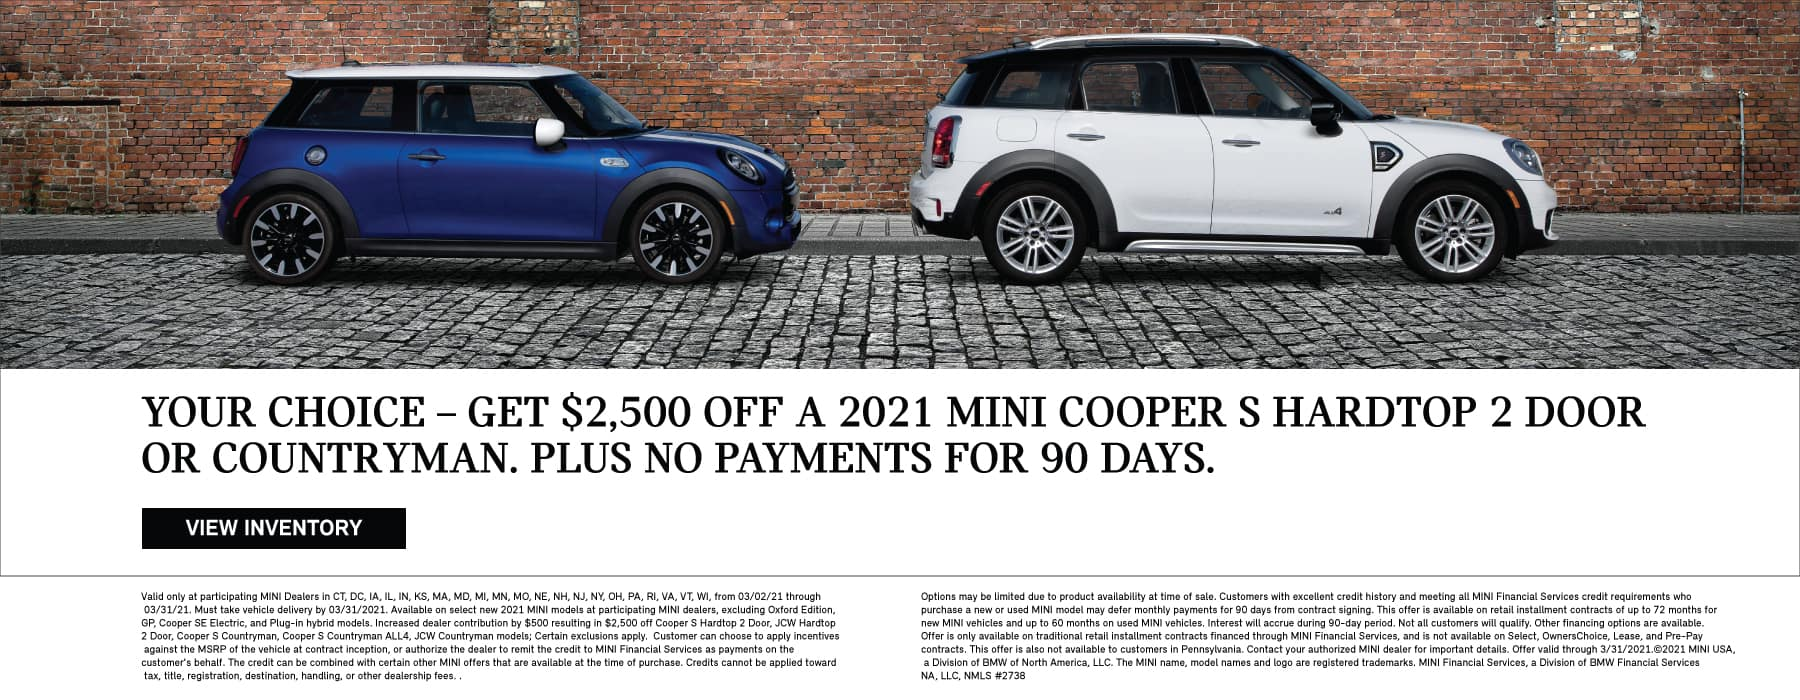 Your Choice- Get up to $2,500 off a 2021 MINI Cooper S Hardtop 2 Door or Countryman. Plus no payments for 90 days.